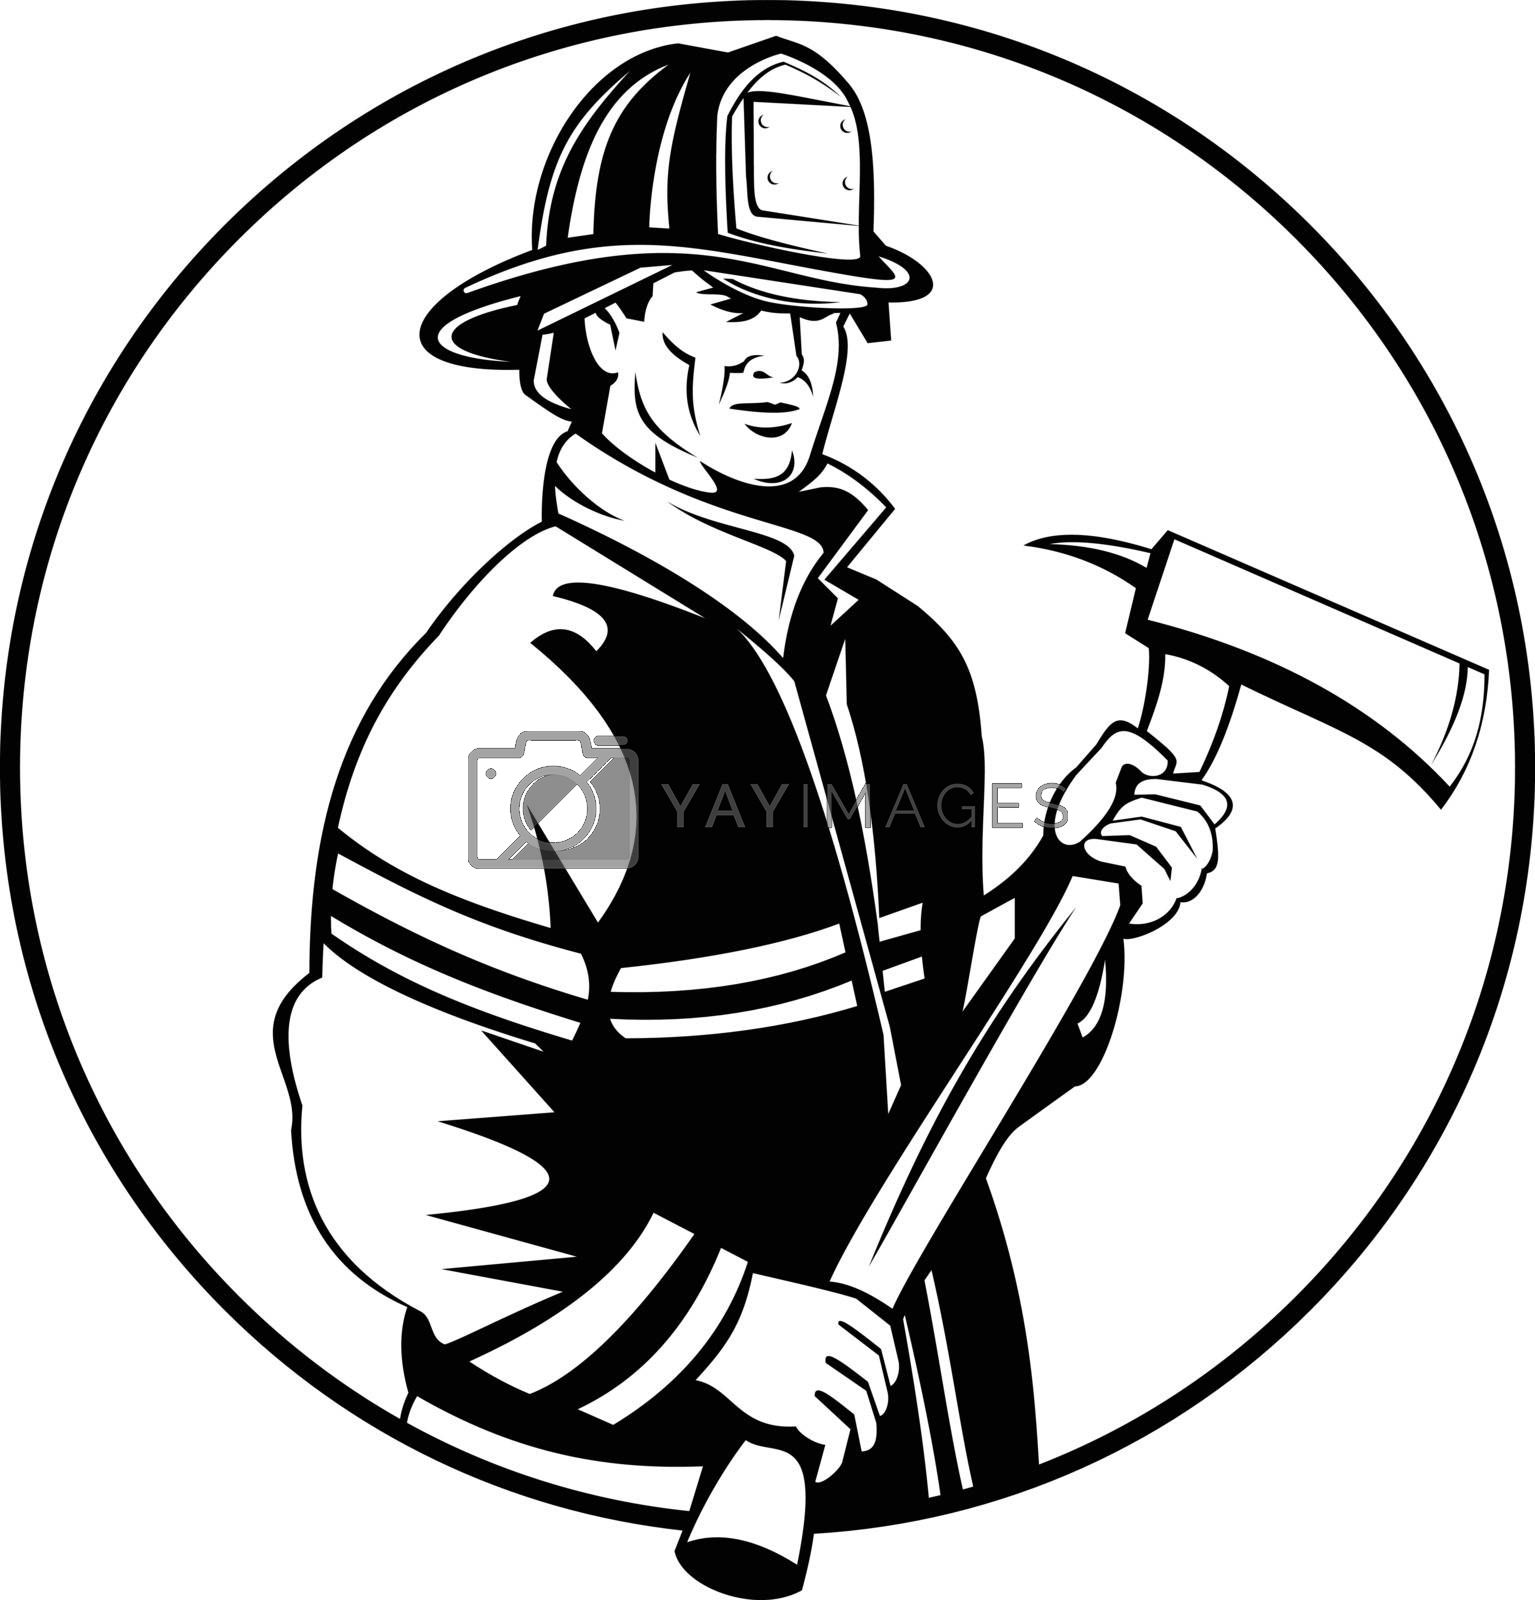 Mascot illustration of an American fireman or firefighter holding fire ax set inside circle viewed from front on isolated background in retro black and white style.